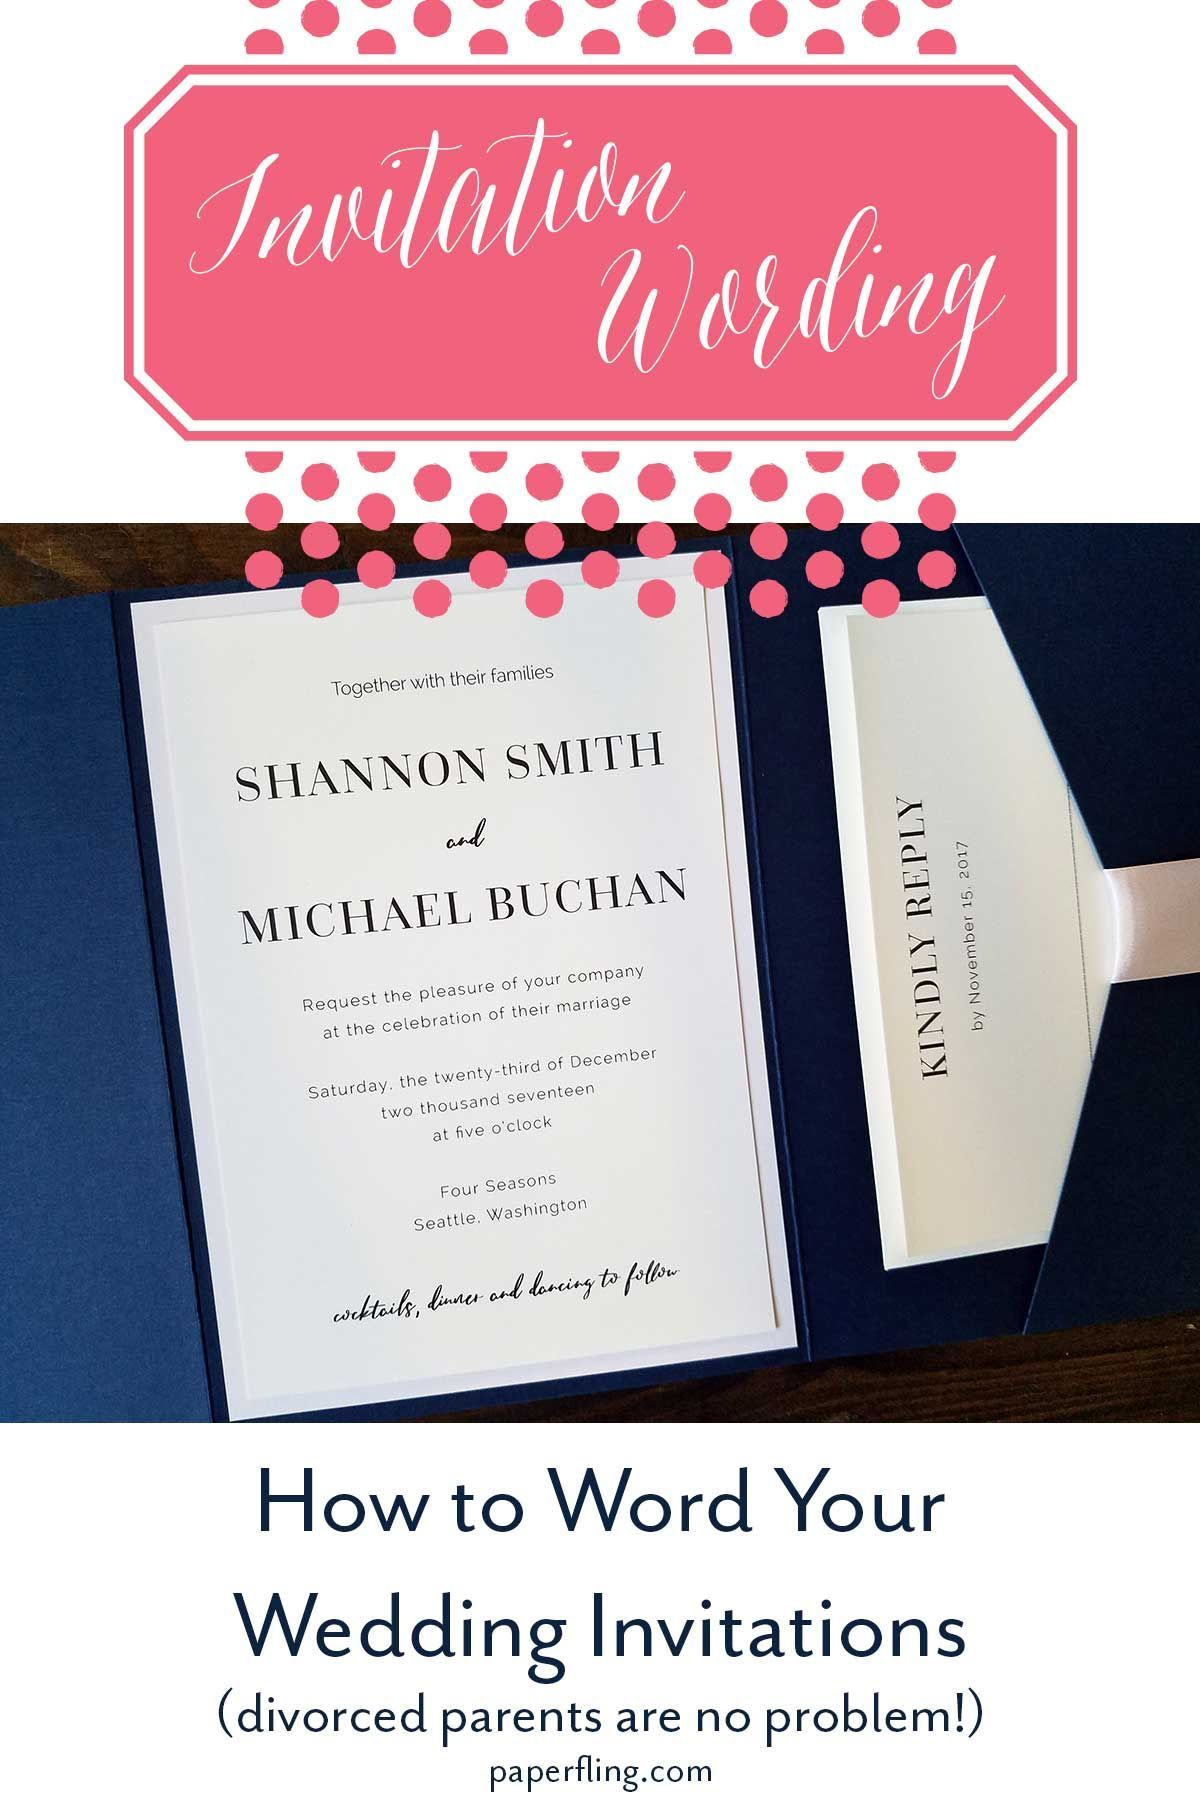 How to Word Your Wedding Invitations | Paper Fling Divorced parents ...